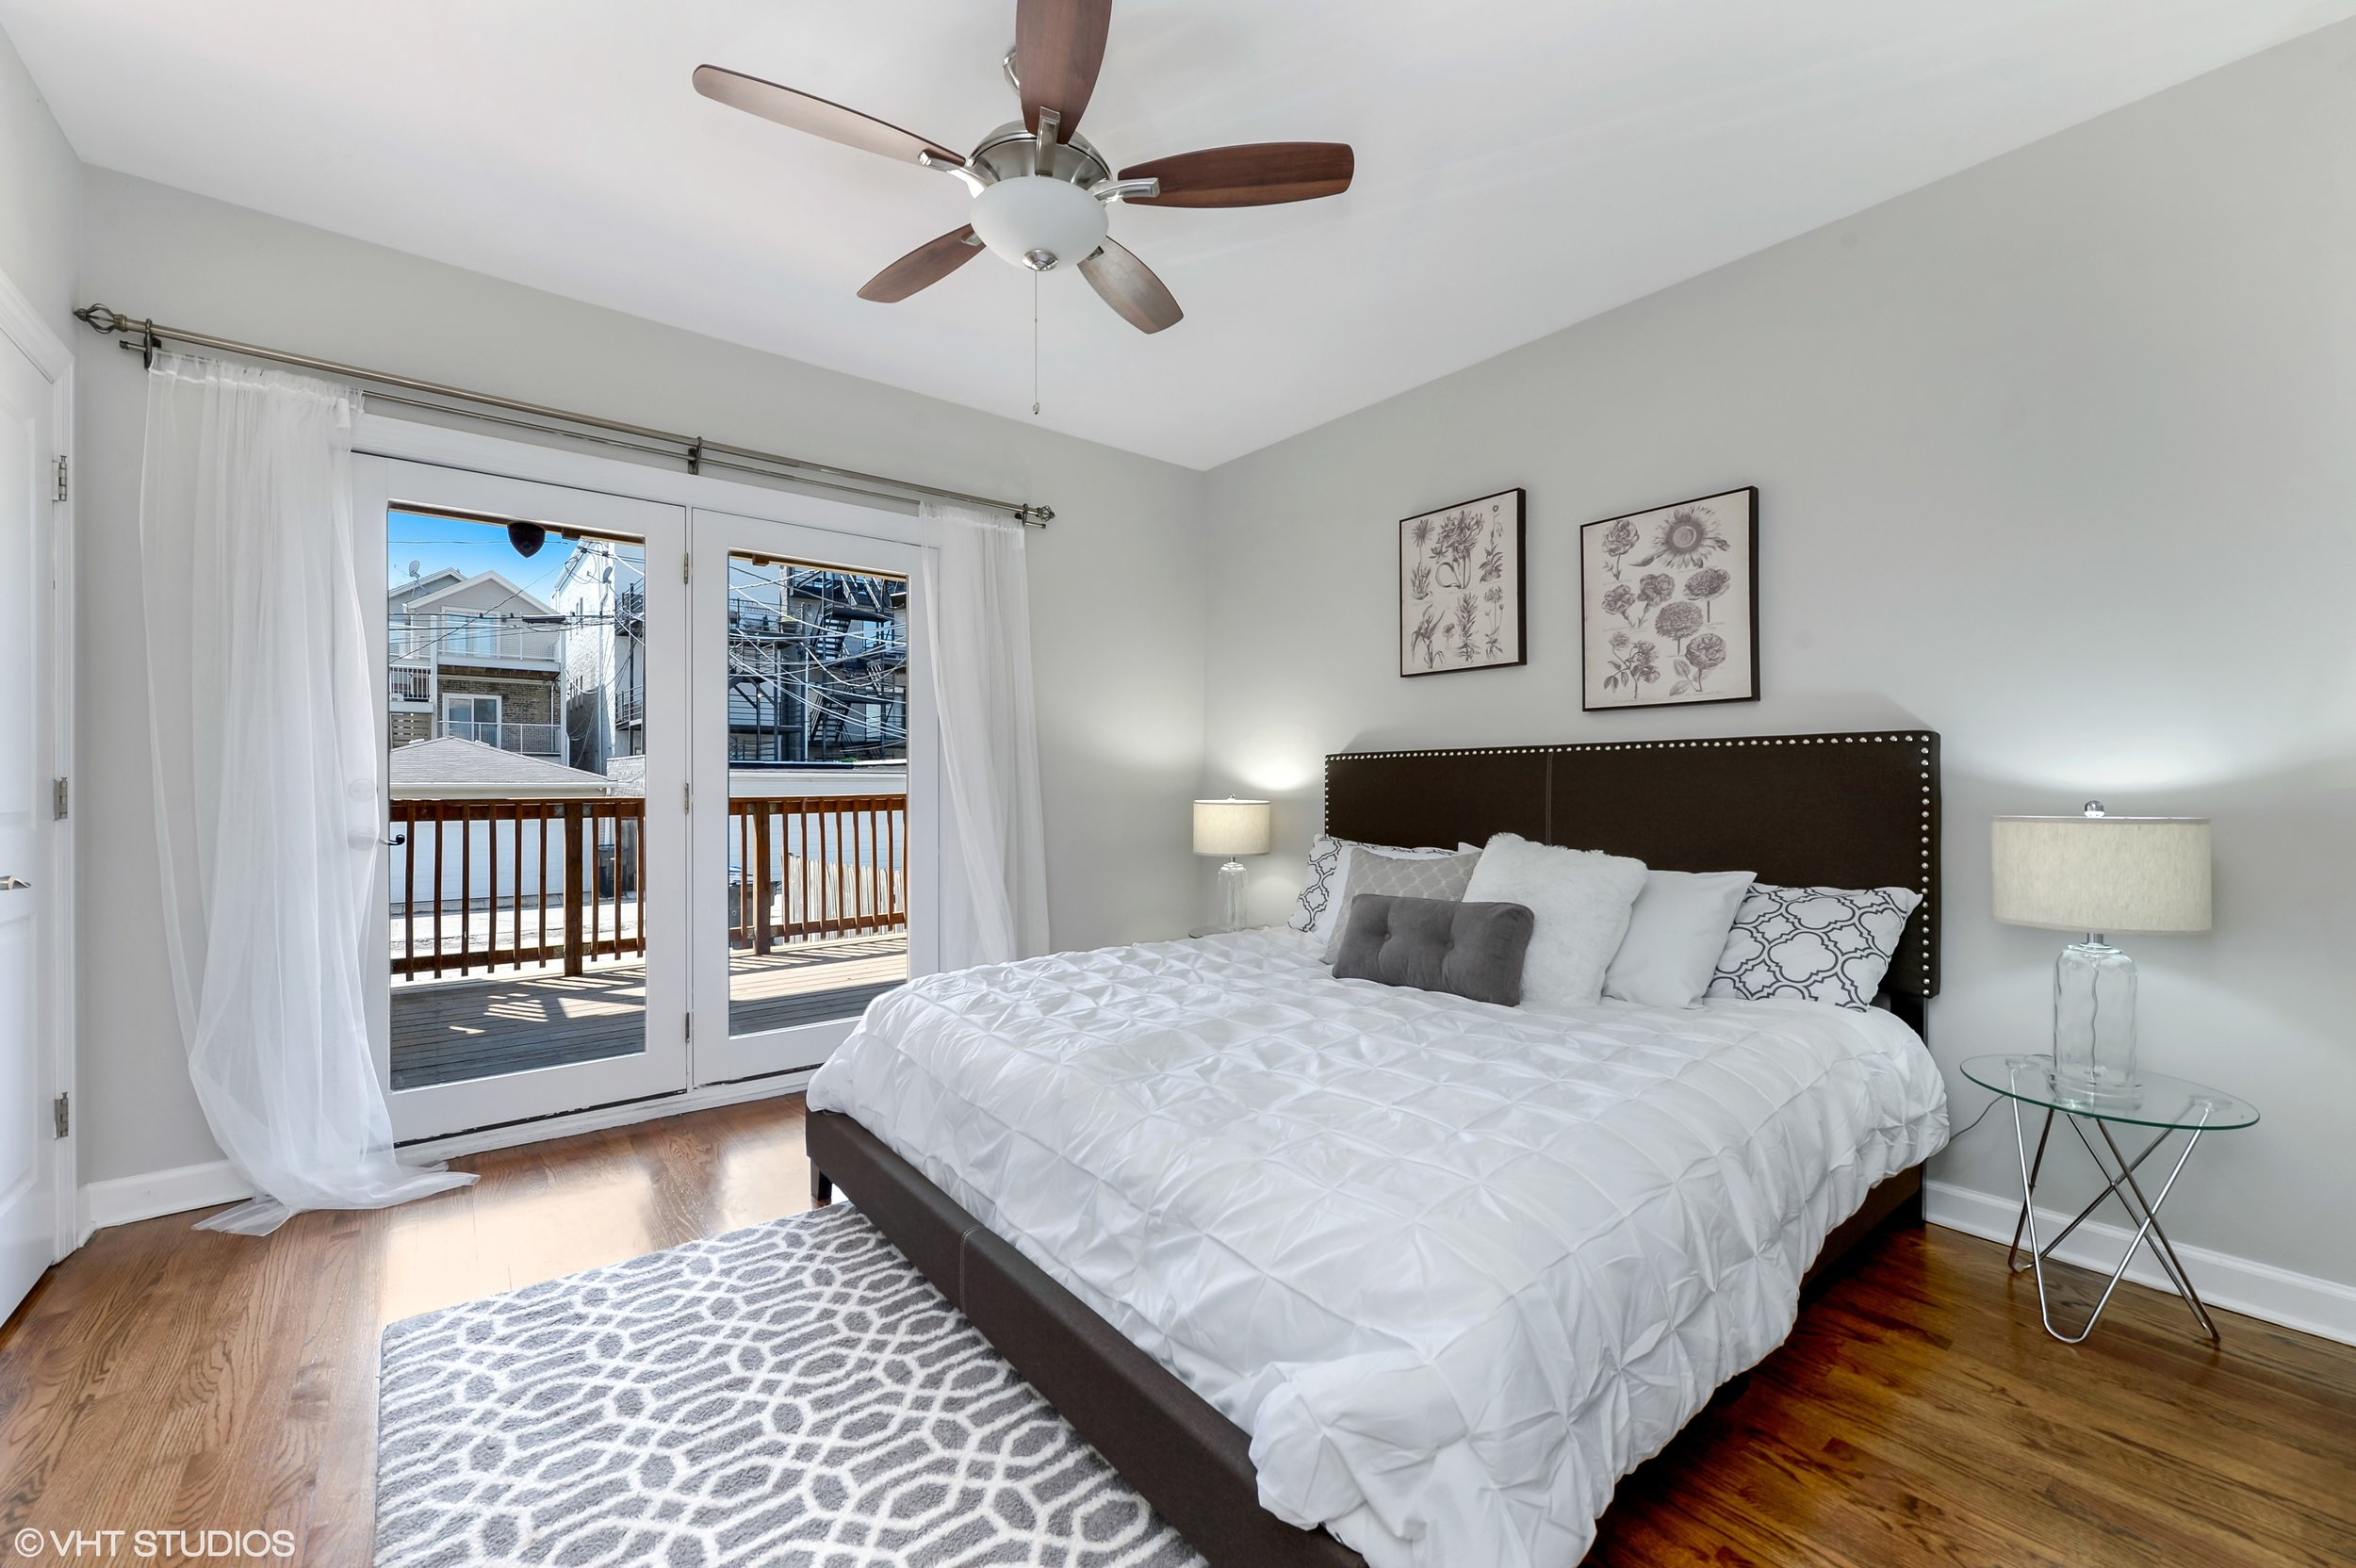 11_942NWoodStreet_Unit1_14_MasterBedroom_HiRes.jpg